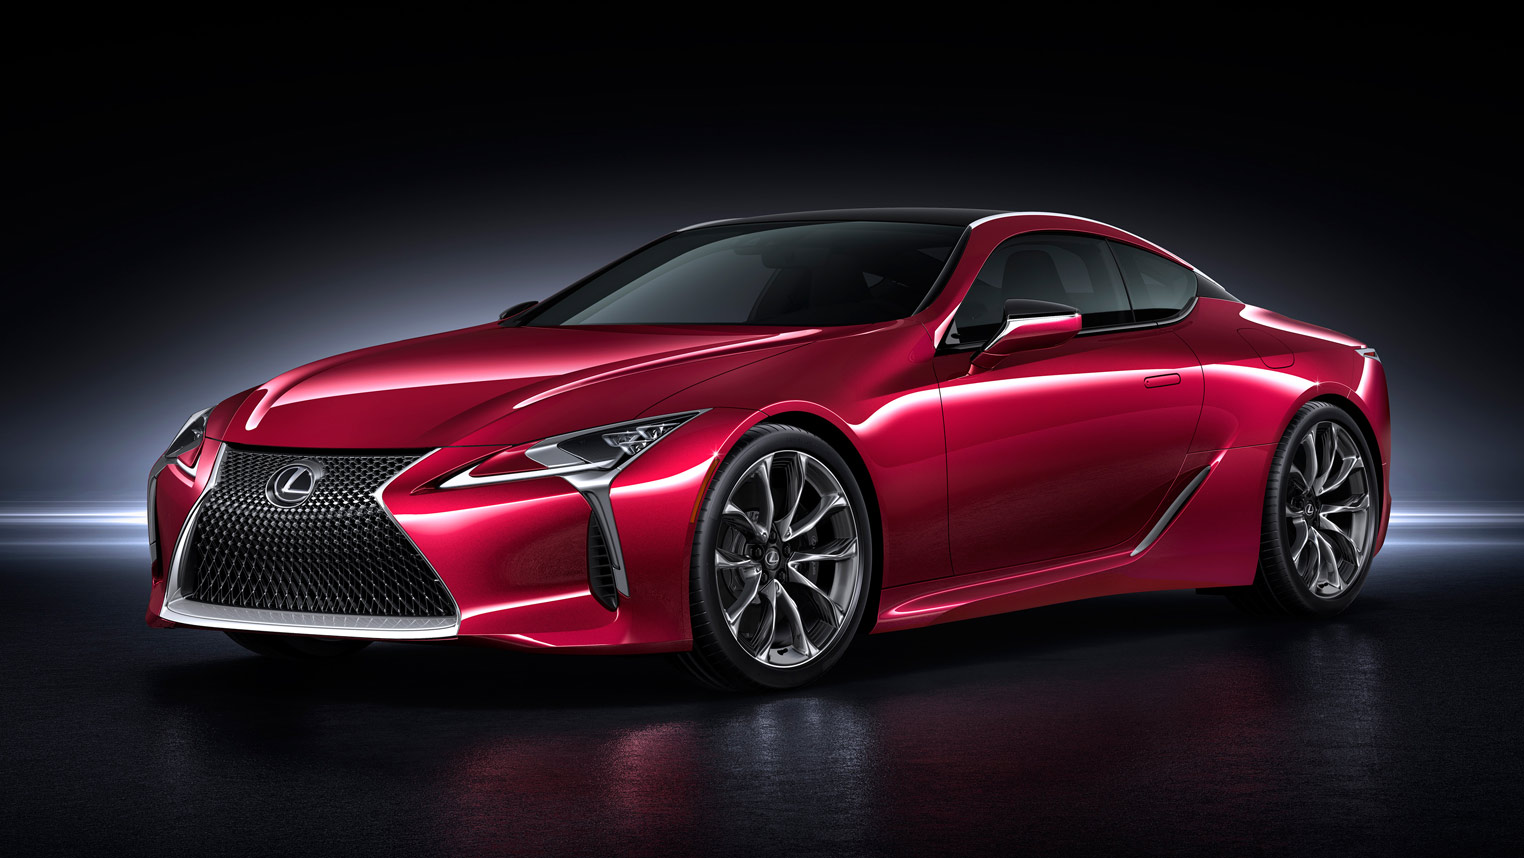 2017 Lexus Lc 500 >> Lexus LC500 Wallpapers - Carfeed